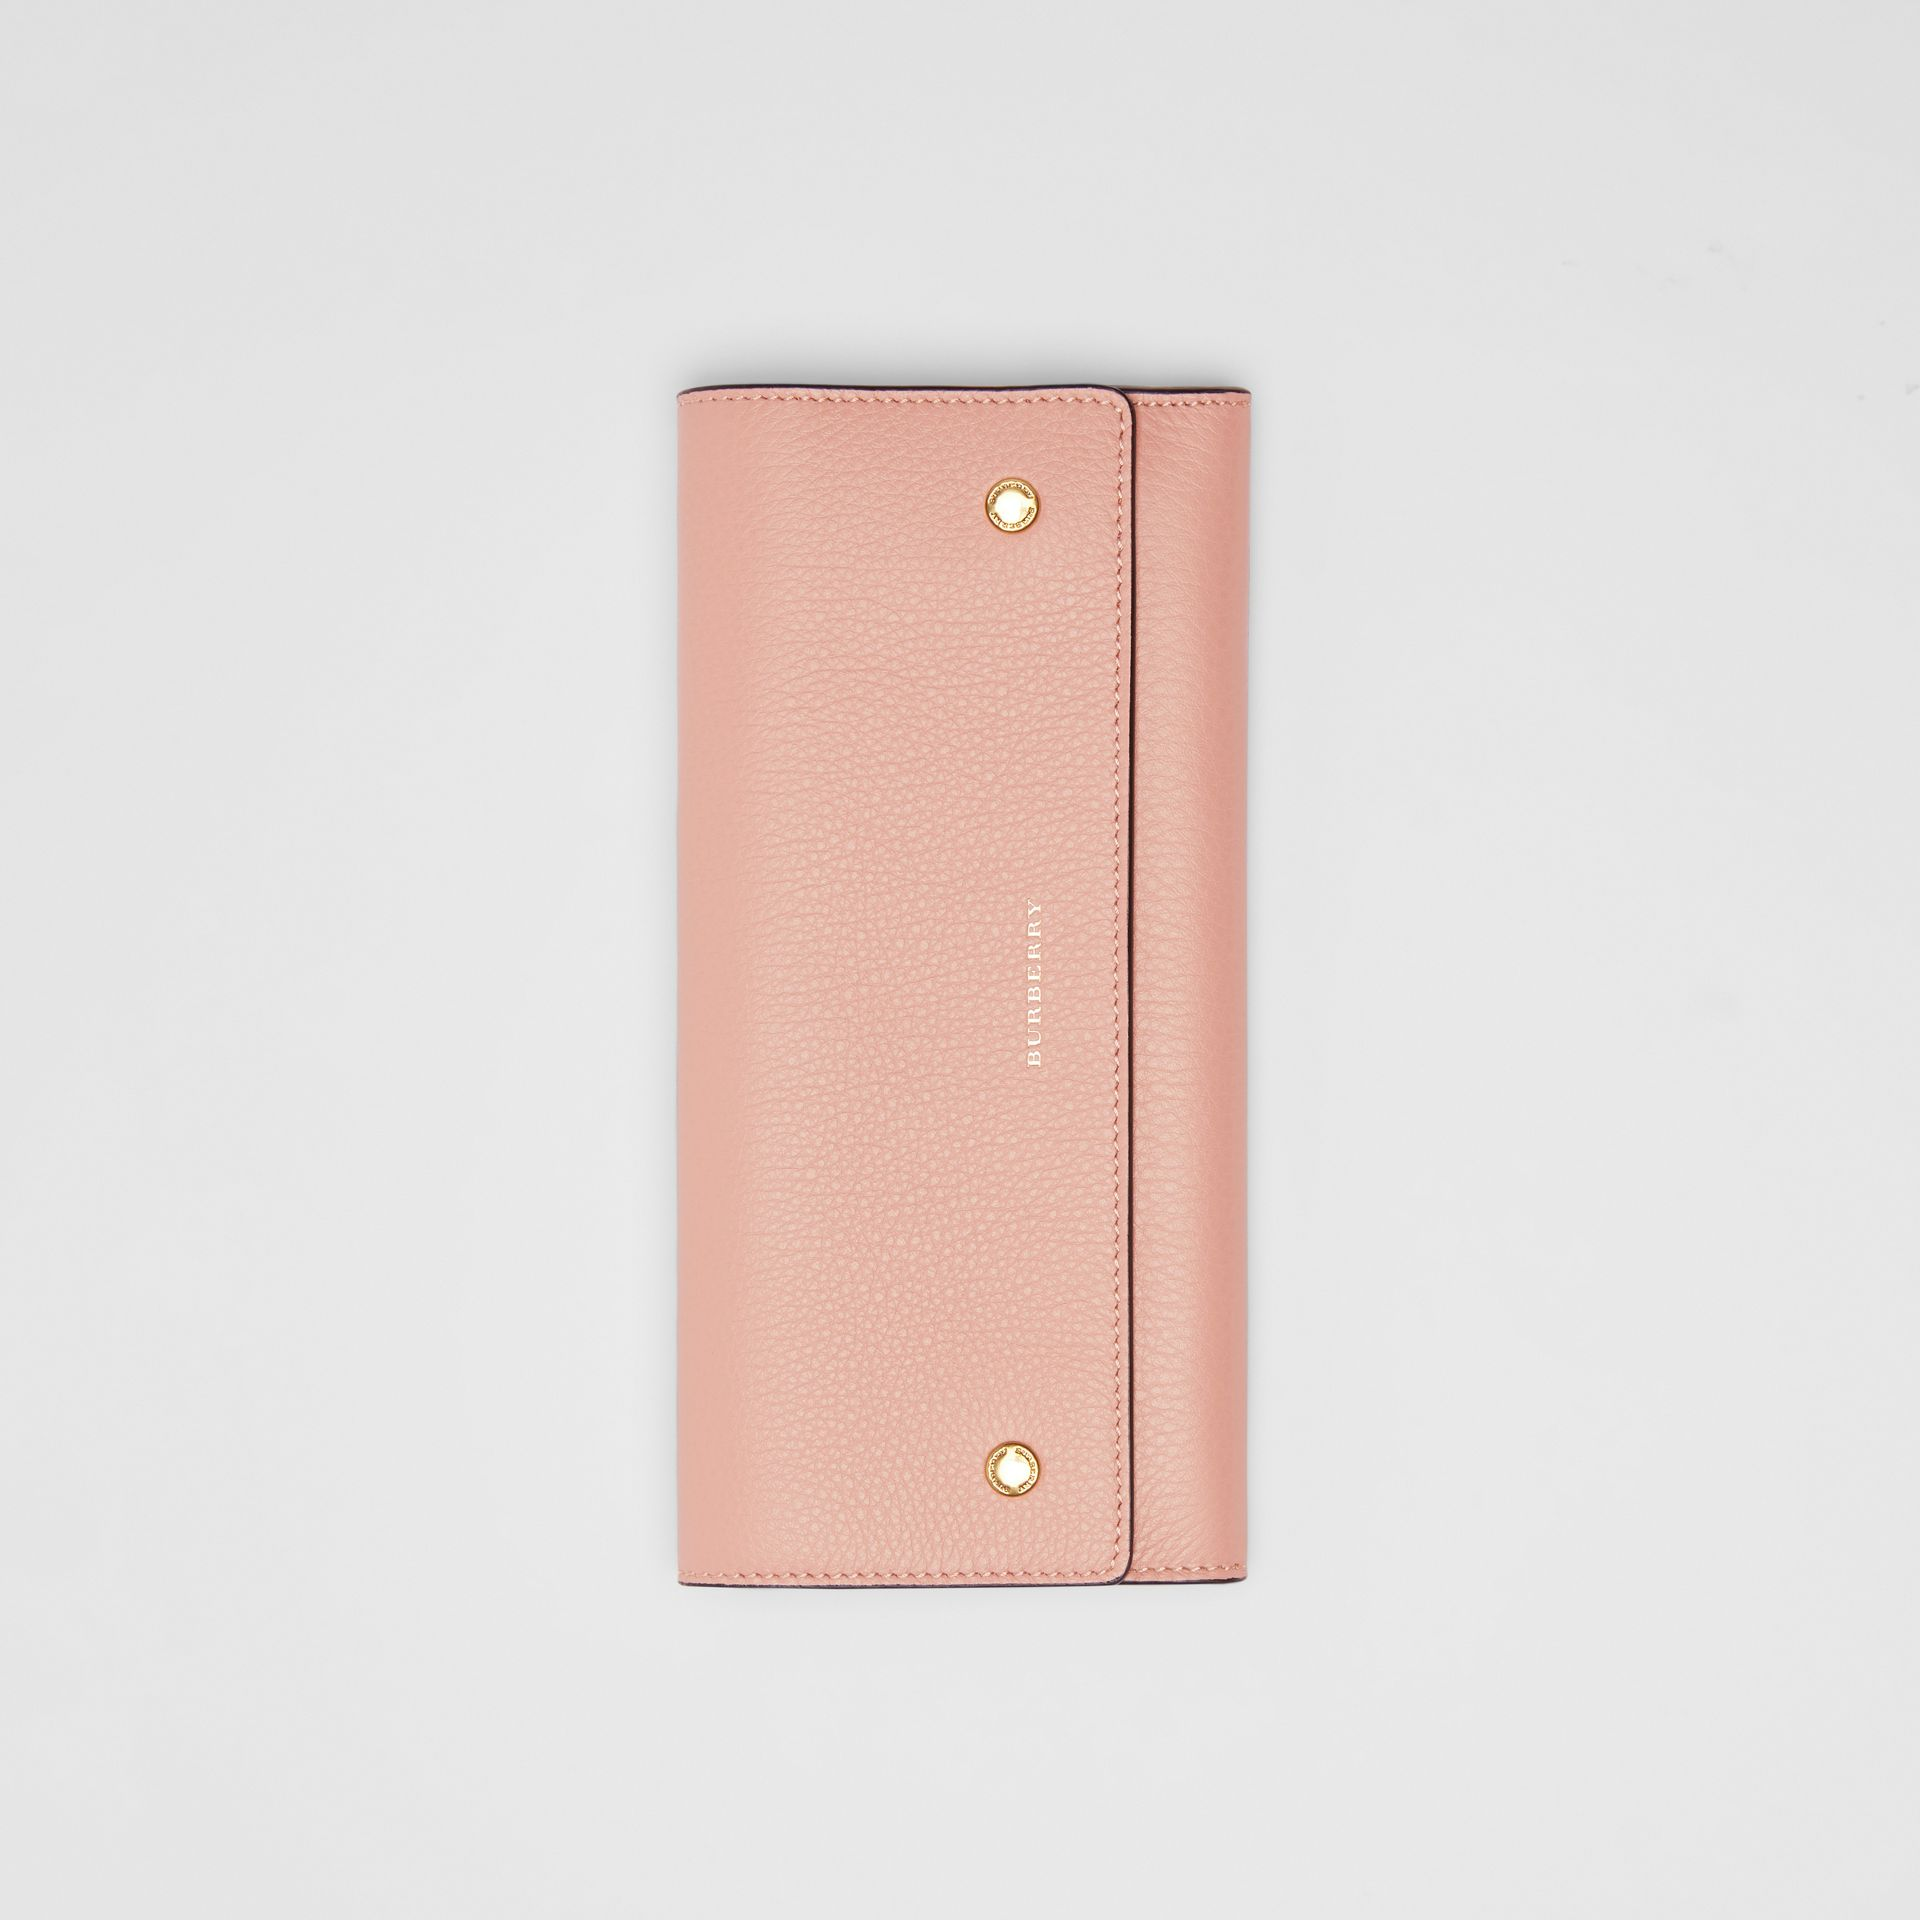 Leather Continental Wallet in Ash Rose - Women | Burberry - gallery image 3